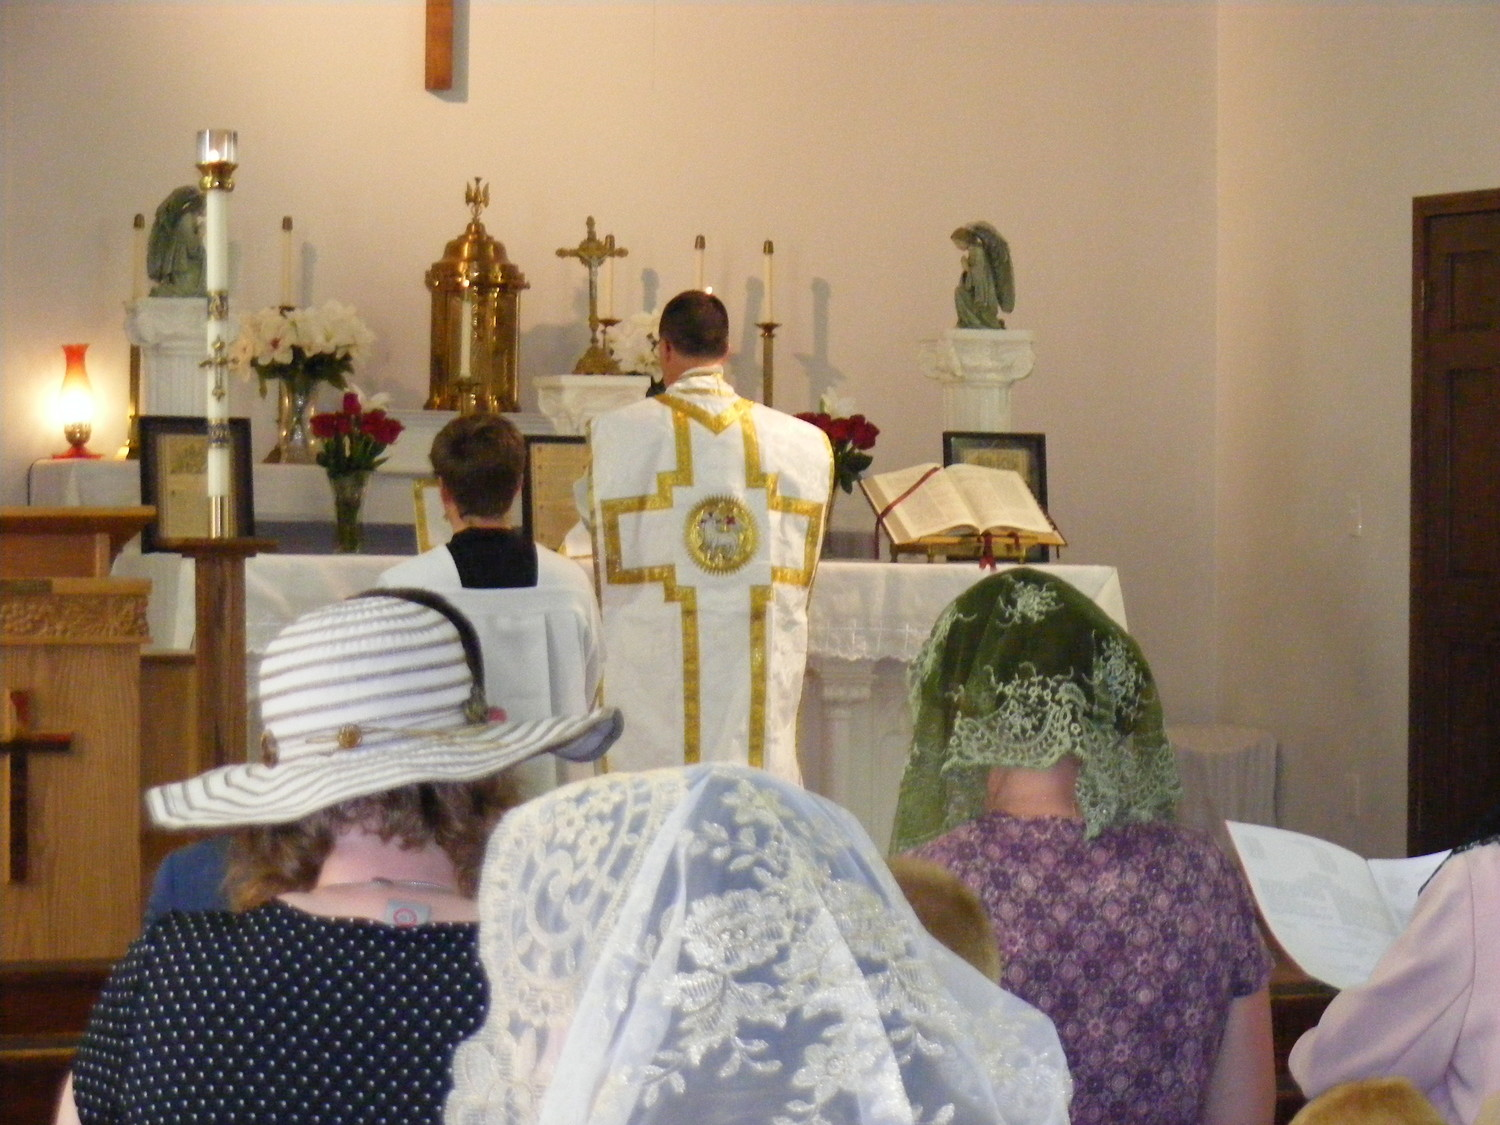 Father Kevin Drew, a priest of the Diocese of Kansas City-St. Joseph, offers Mass in Latin in St. Rose of Lima Church in Novinger.